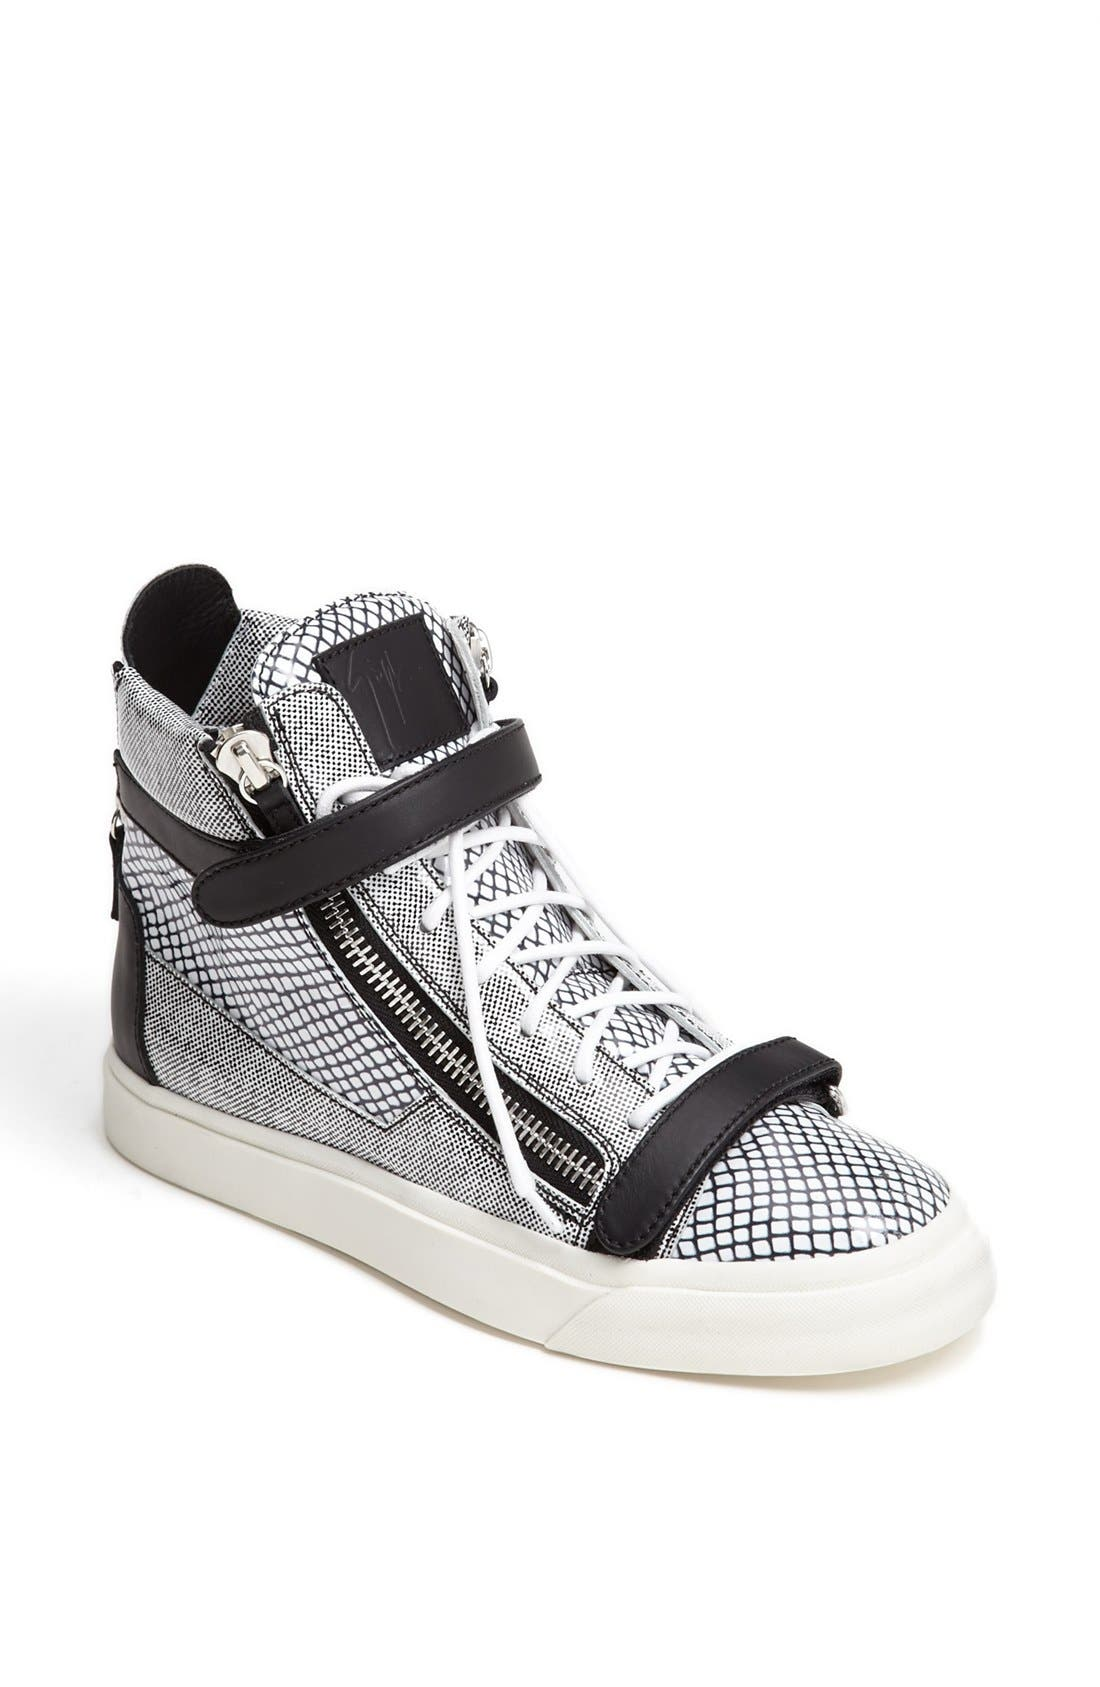 Alternate Image 1 Selected - Giuseppe Zanotti High Top Sneaker